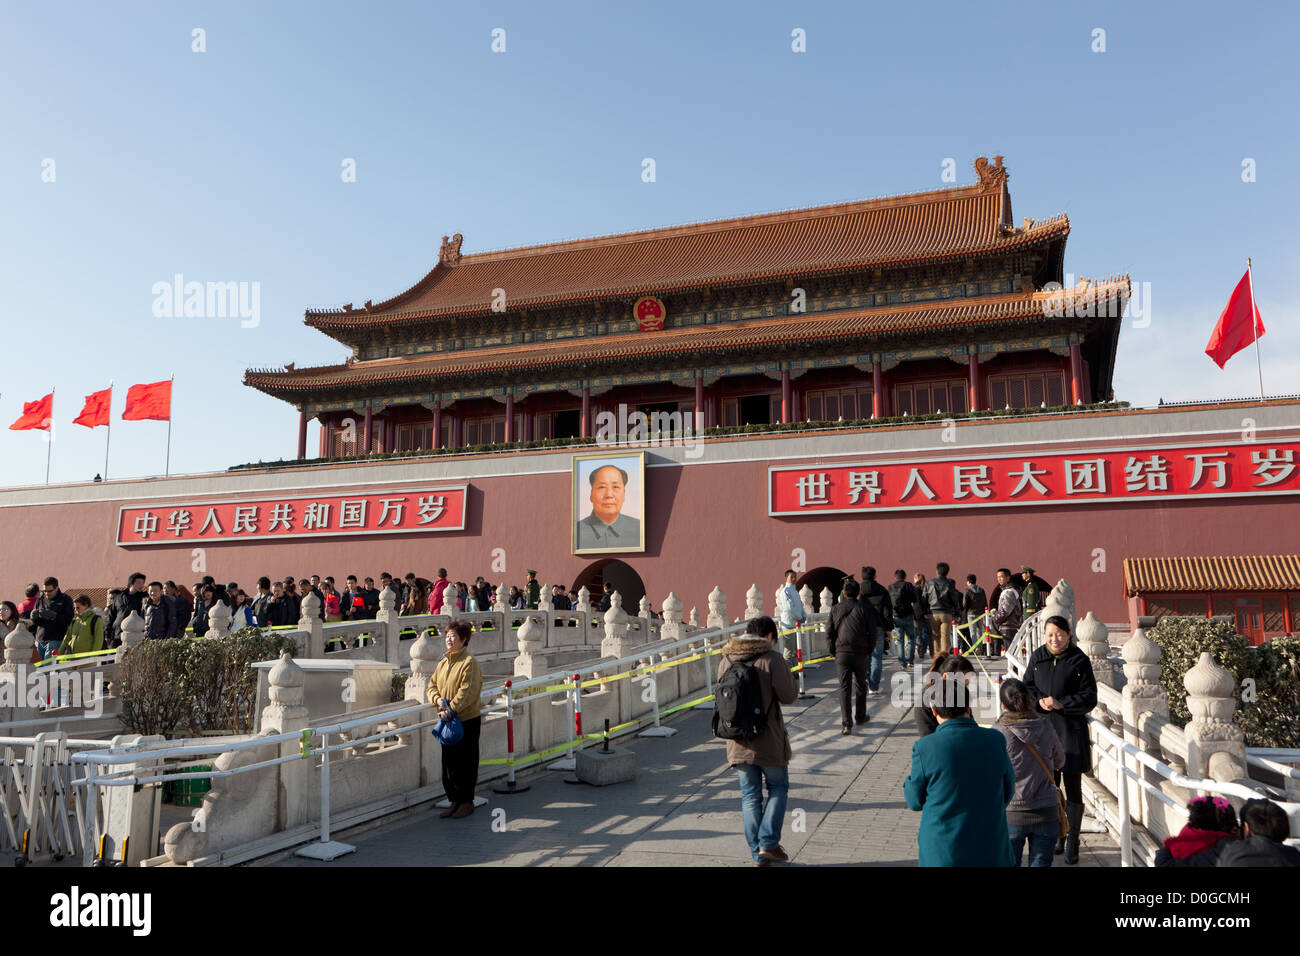 The Gate of Heavenly Peace at the Forbidden City. - Stock Image